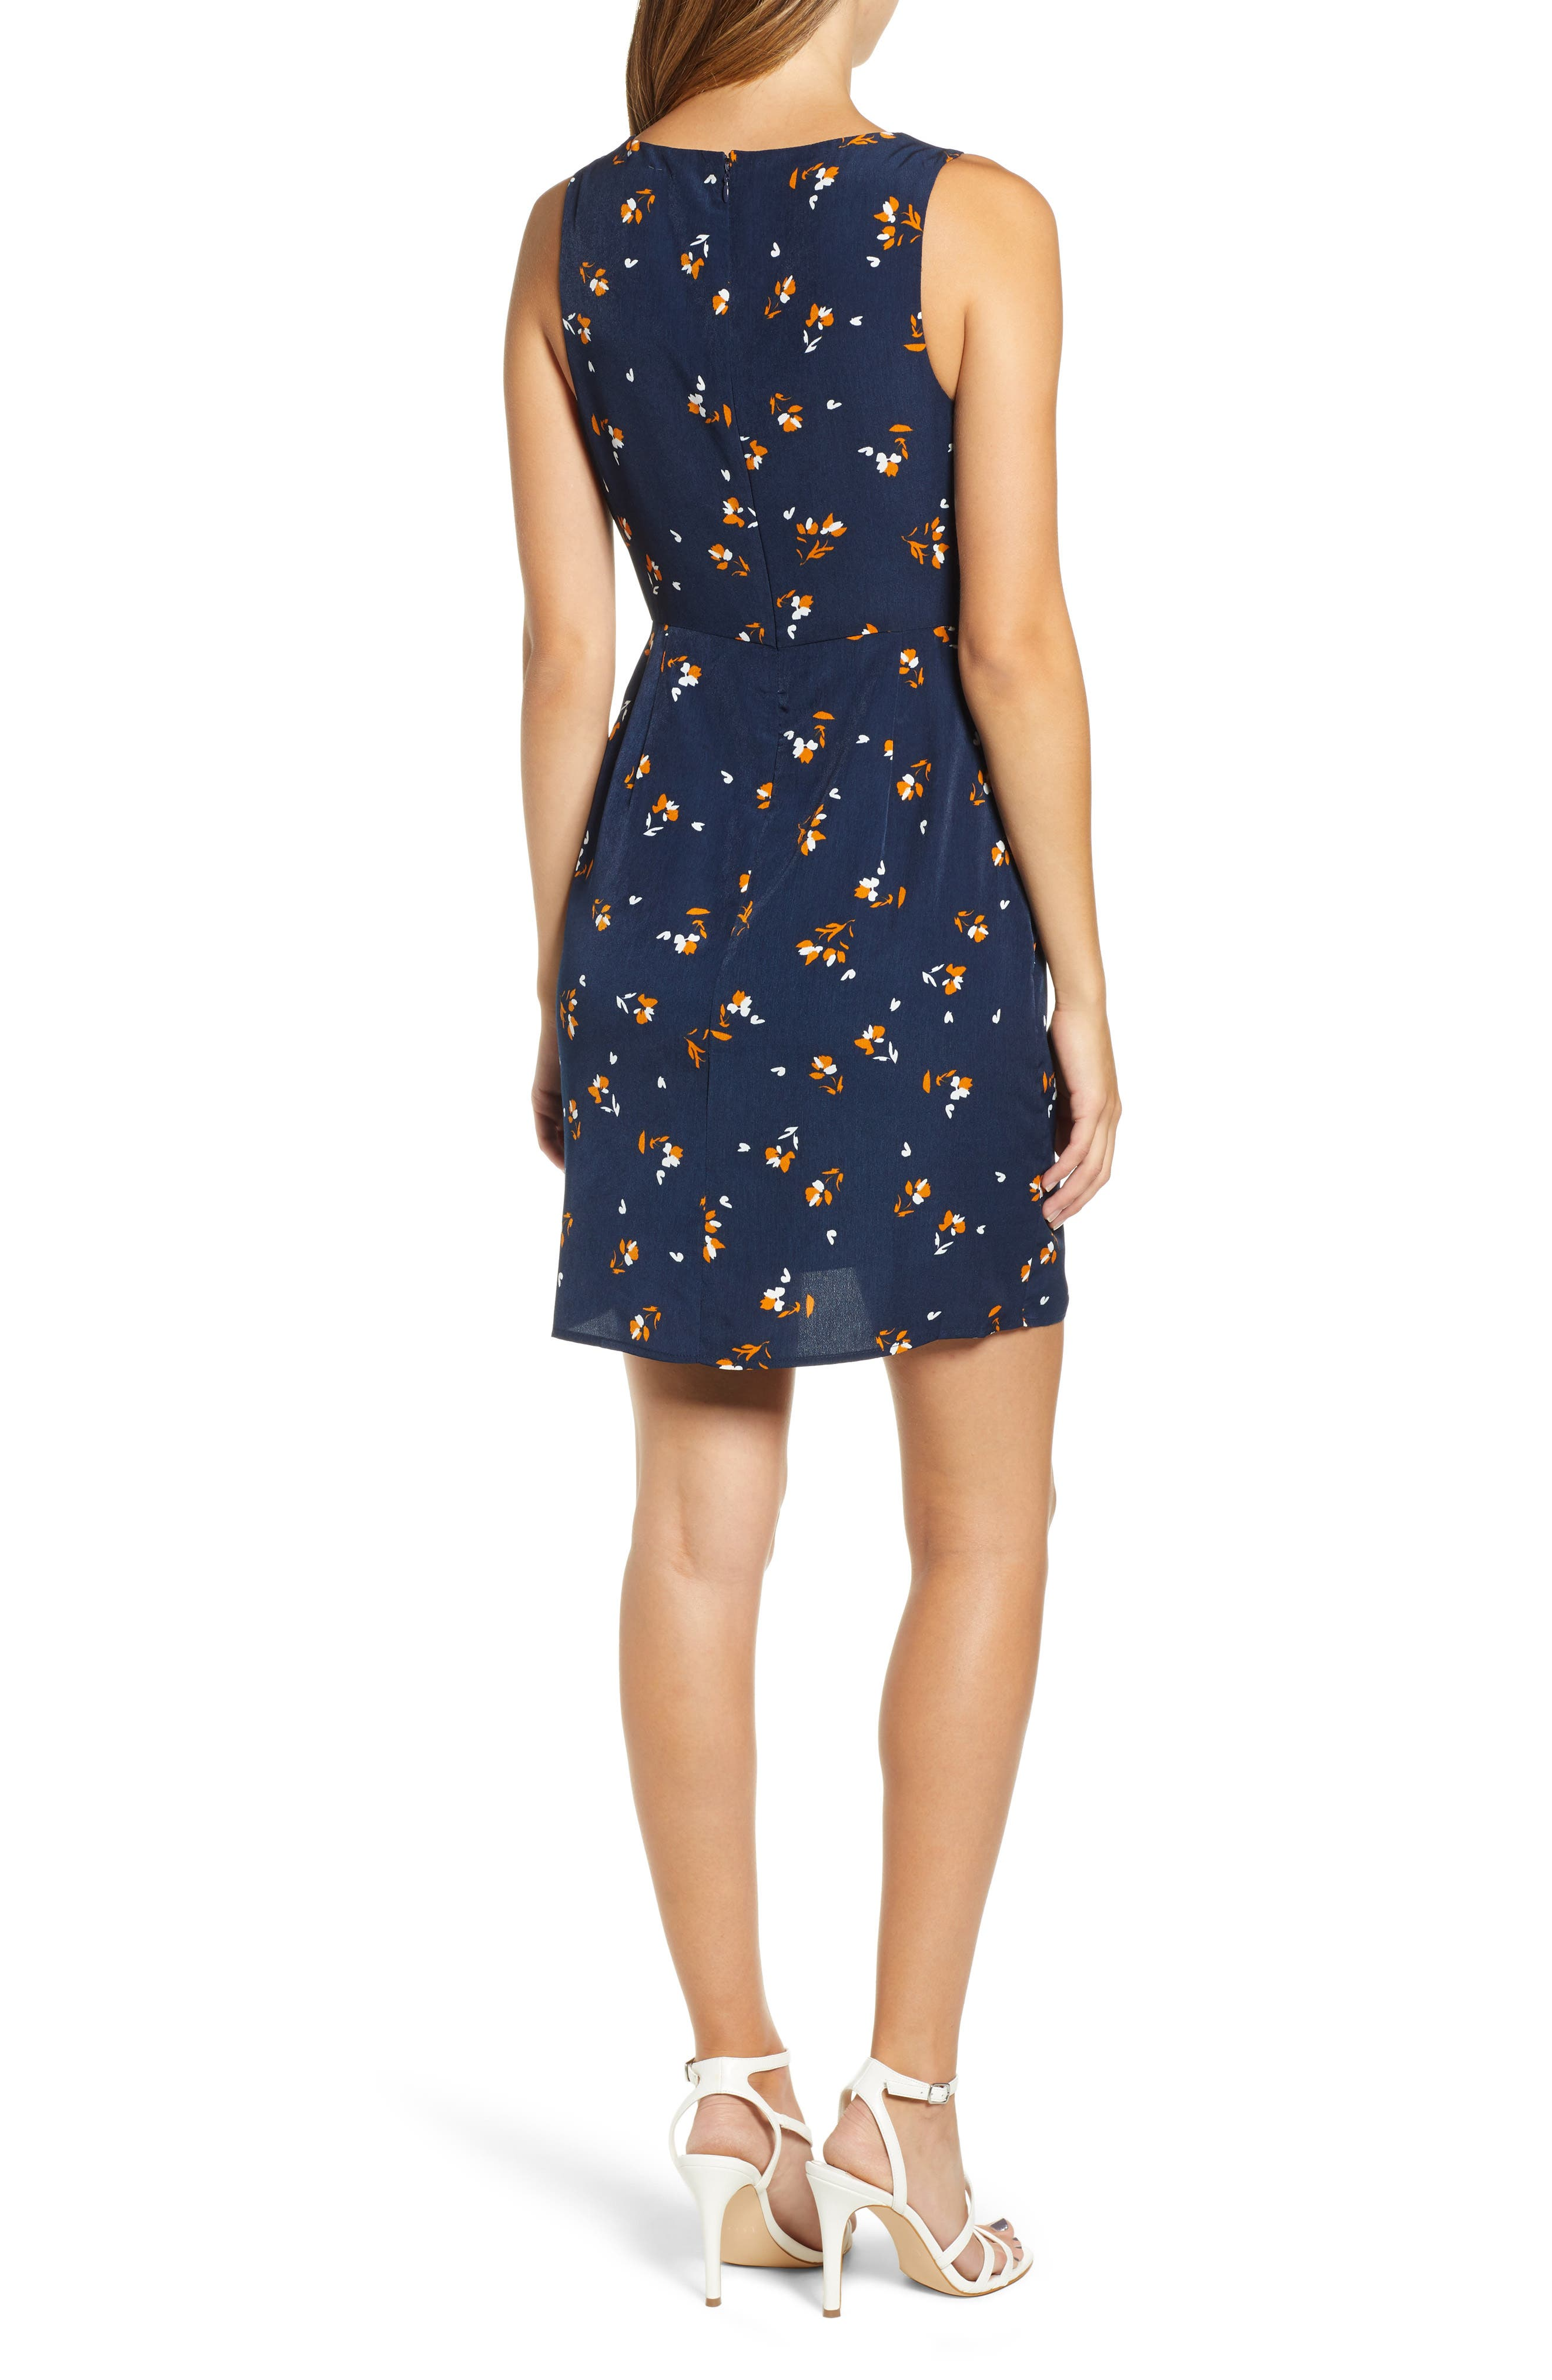 Tie-Front Mini Dress,                             Alternate thumbnail 2, color,                             NAVY EVENING DITSY FLORAL